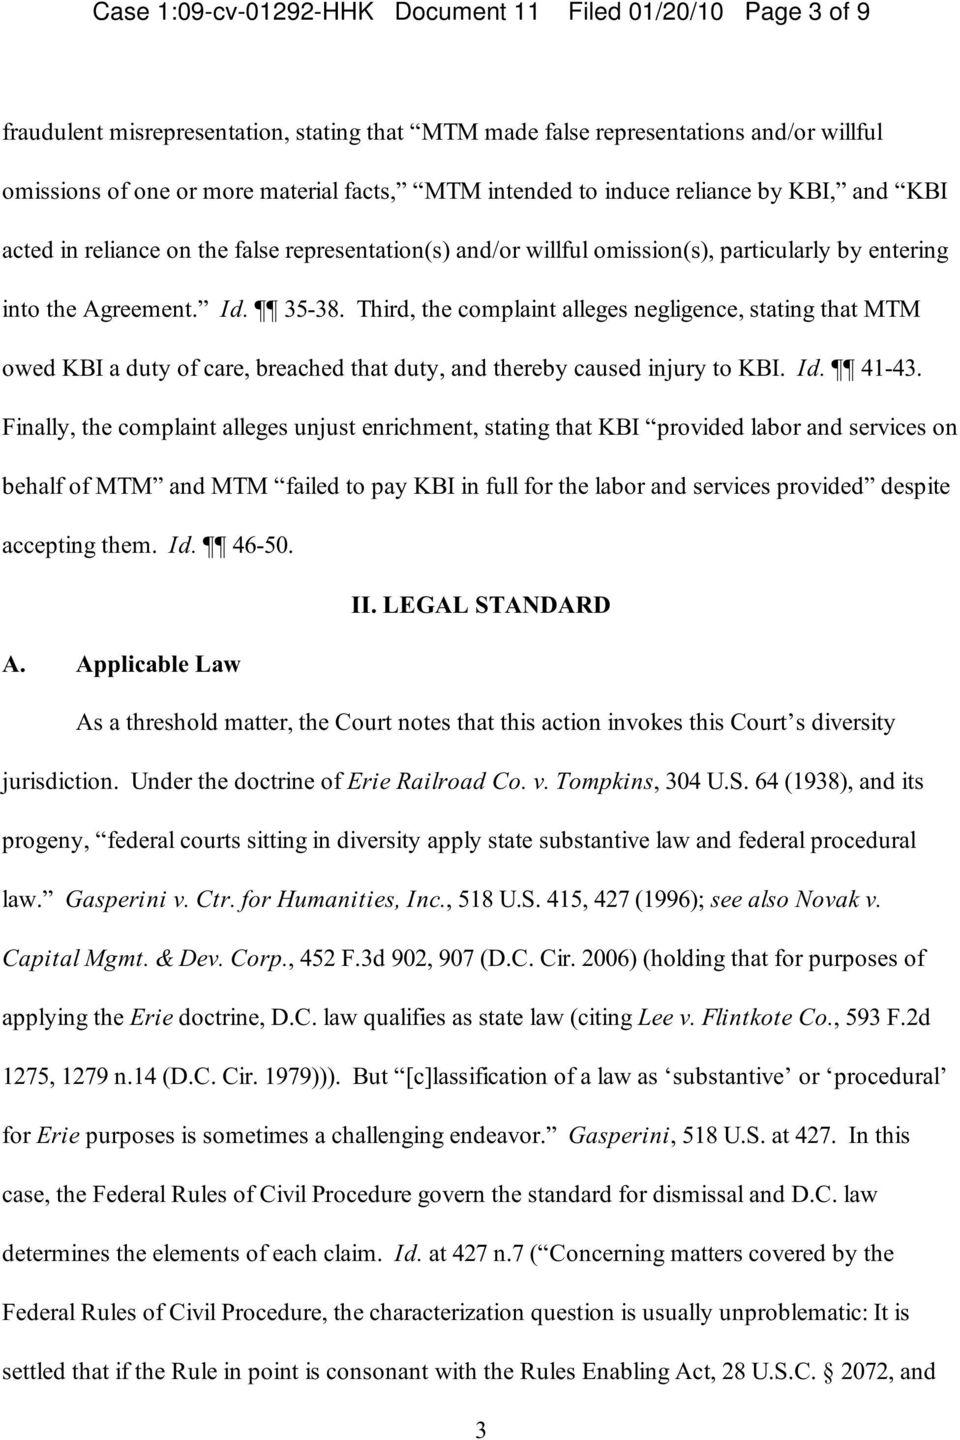 Third, the complaint alleges negligence, stating that MTM owed KBI a duty of care, breached that duty, and thereby caused injury to KBI. Id. 41-43.